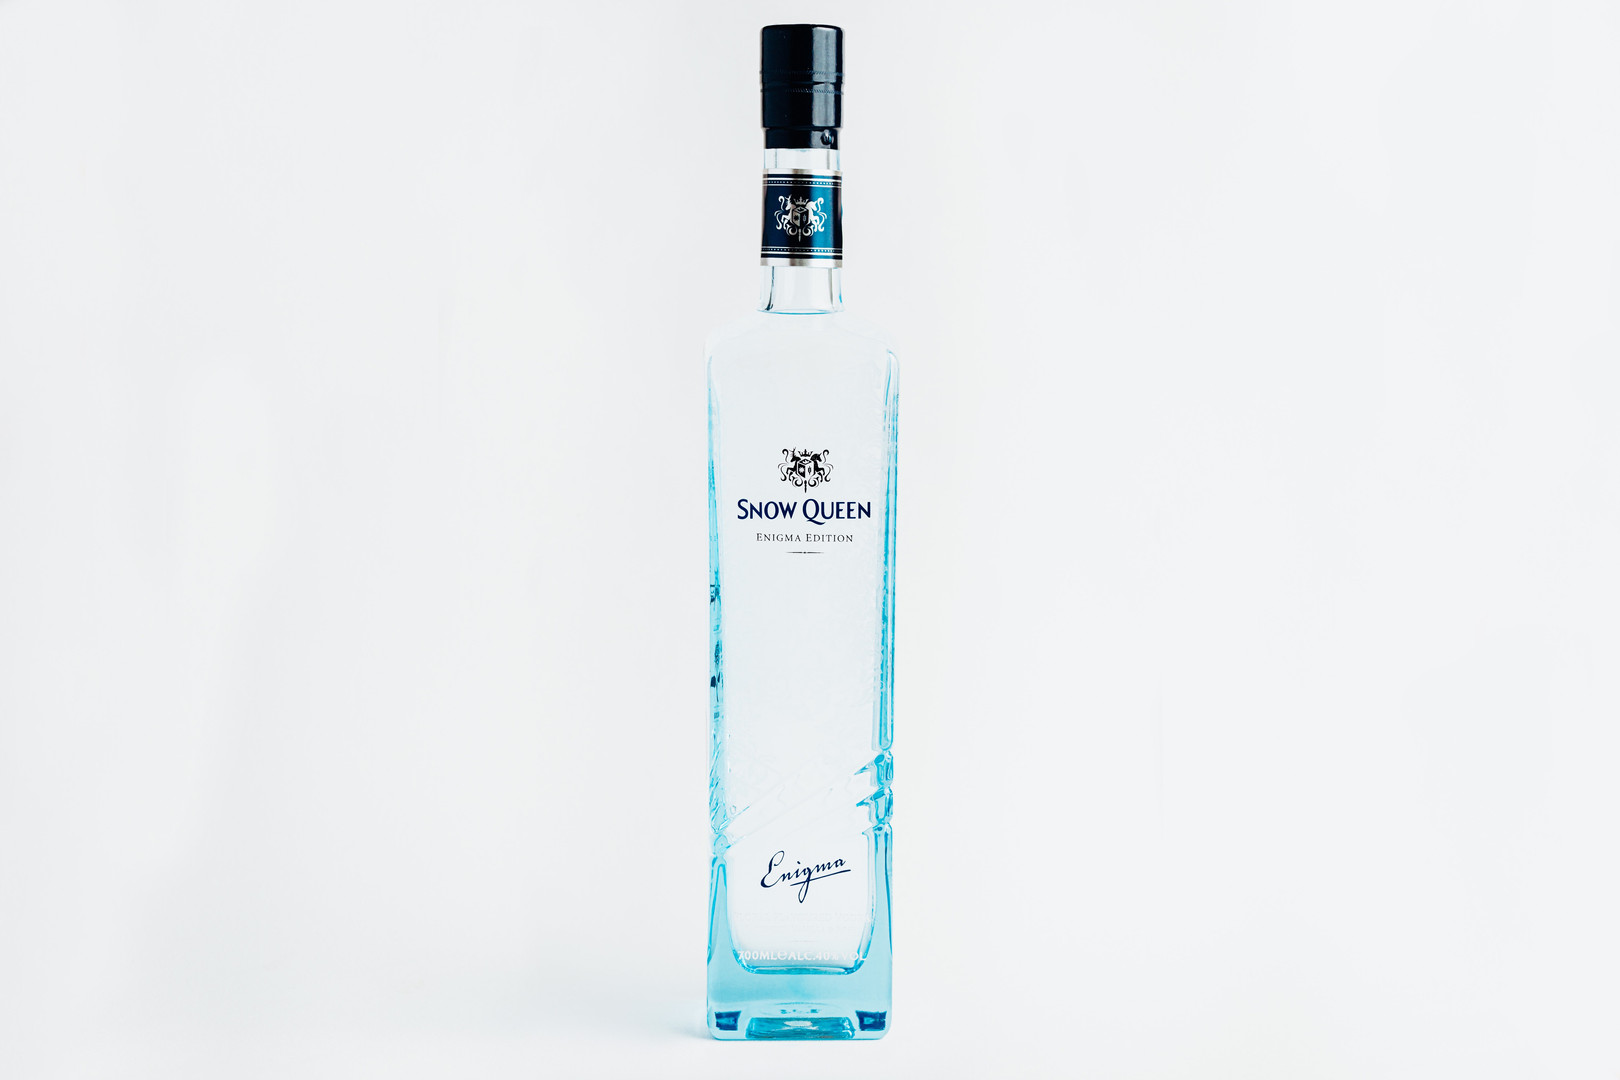 Snow queen limited edition bottle